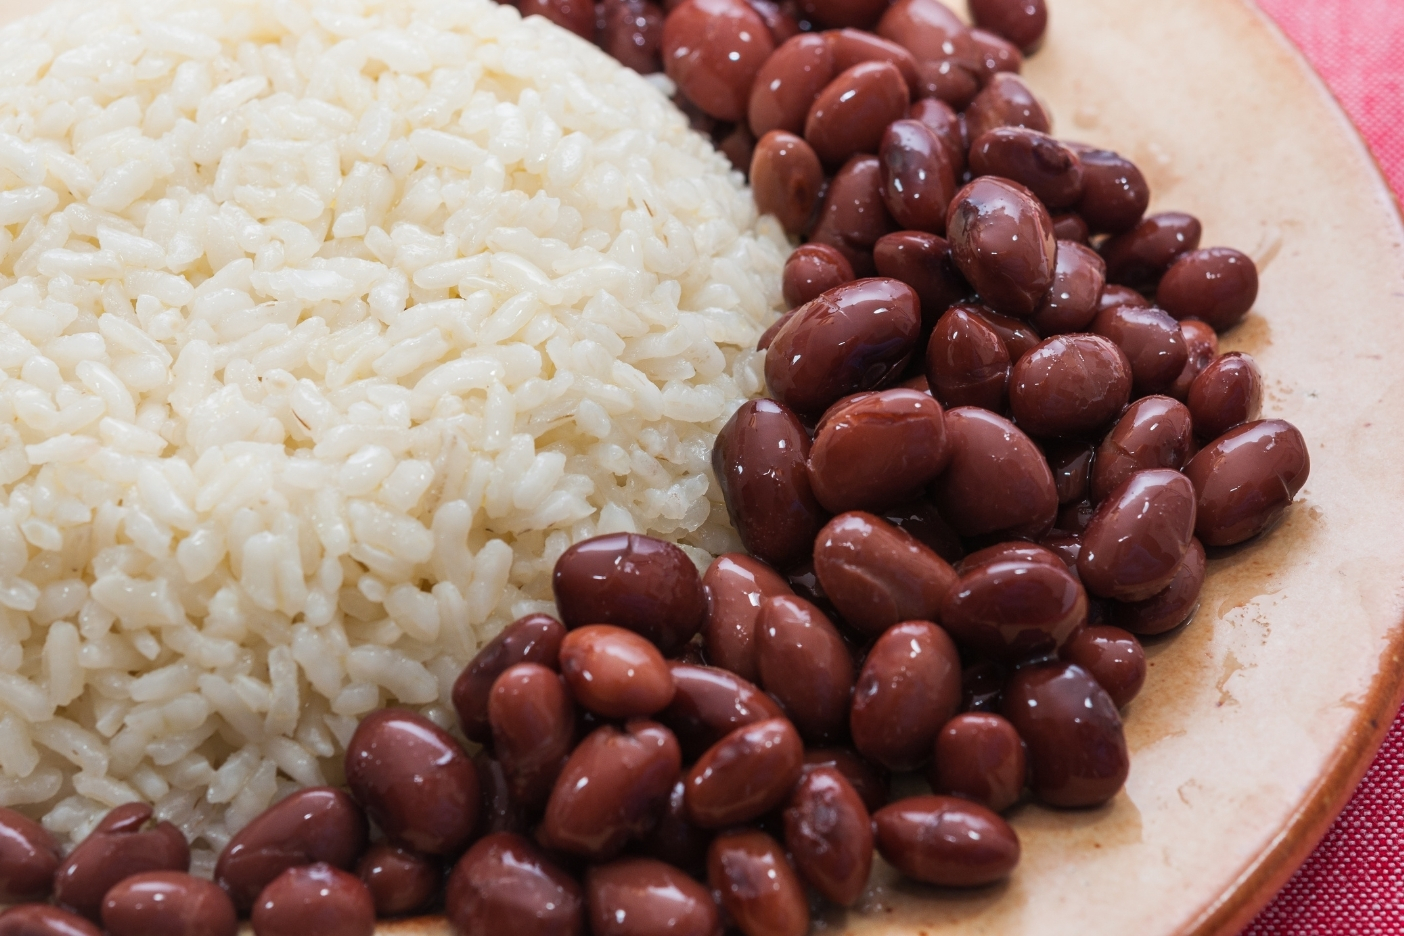 Concerning Dietary Patterns Among Latinx Linked to Greater Number of Years Living in the U.S.